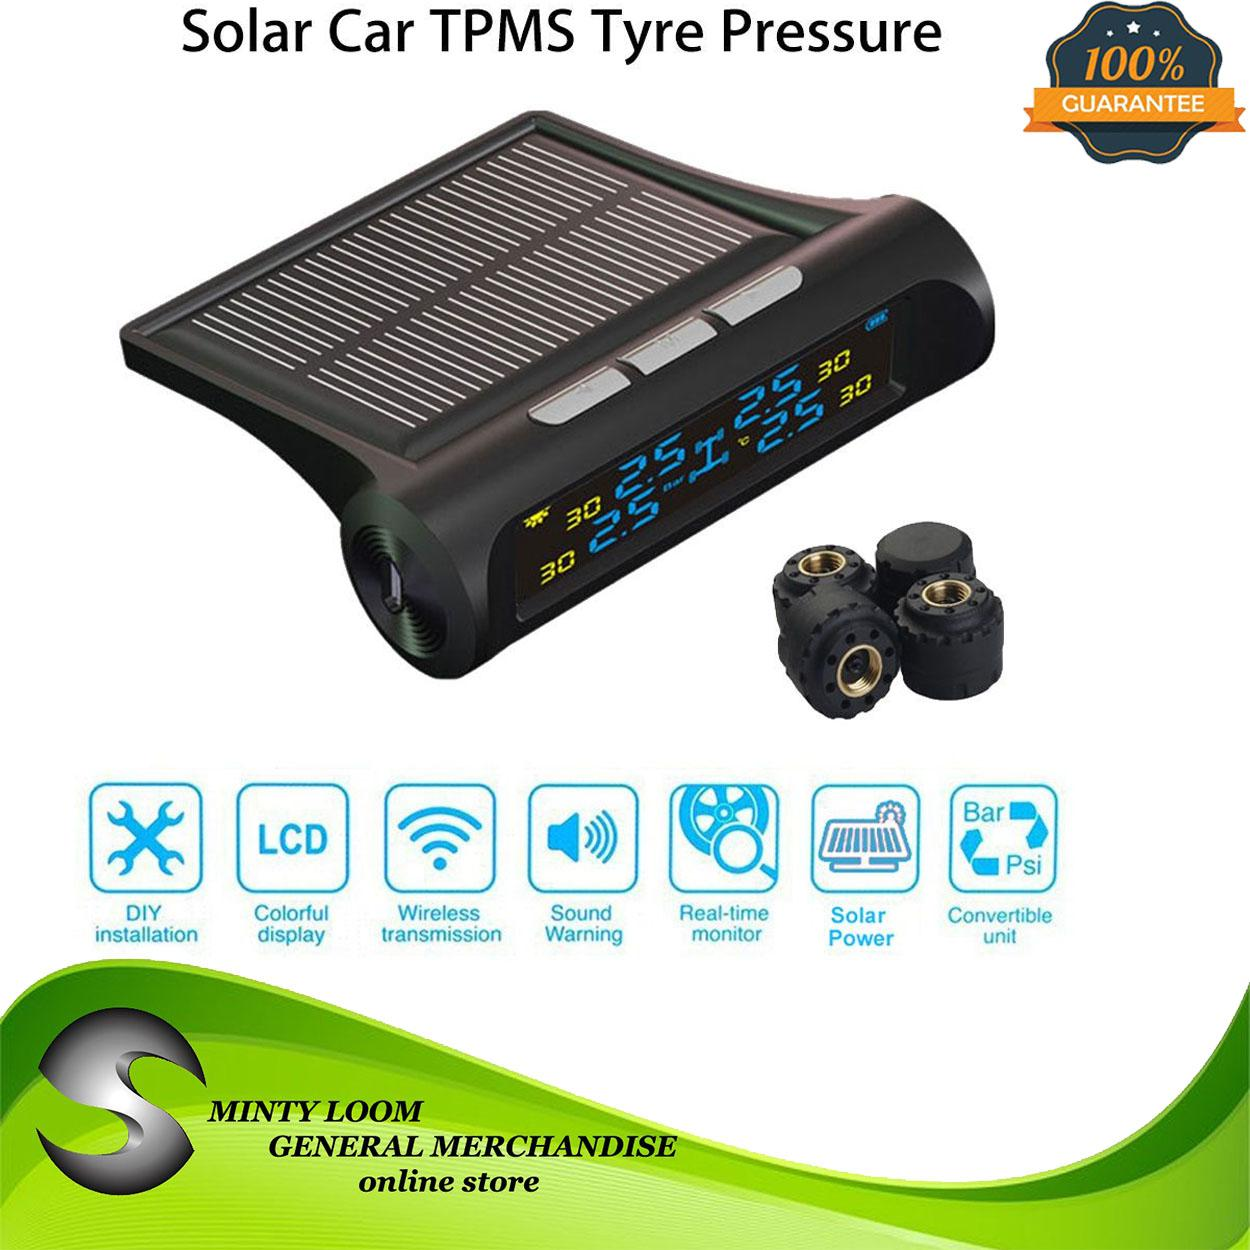 New Tpms Solar Power Car Wireless External Tire Pressure Monitoring System Lcd Display With 4 External Sensors By Minty Loom General Merchandise.